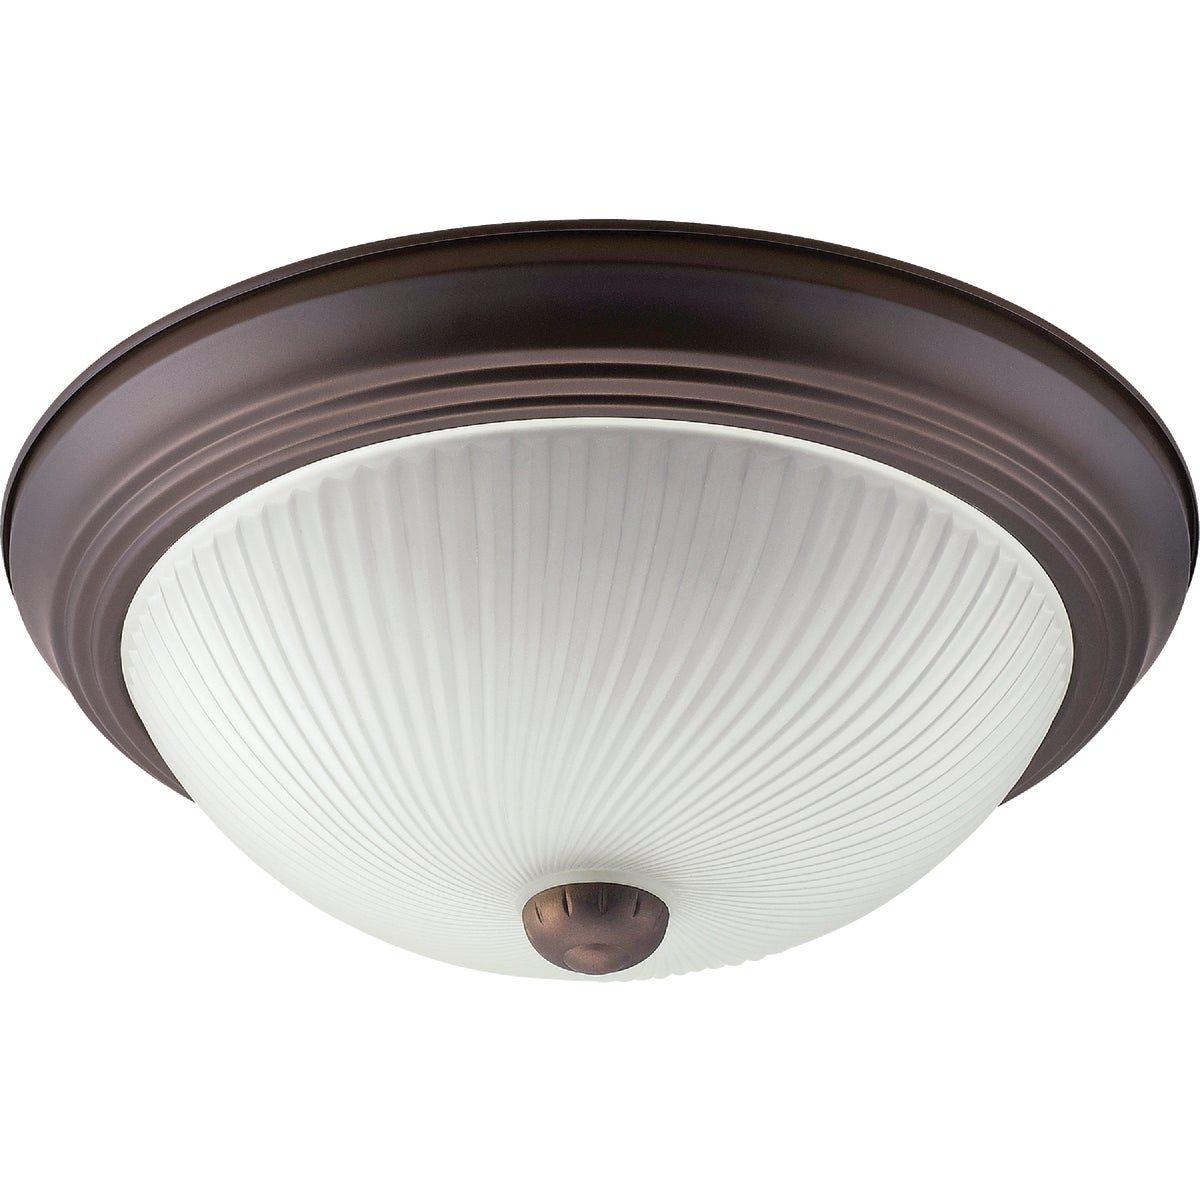 2BLB ORB CEILING FIXTURE - IFM213ORB by Canarm Gs